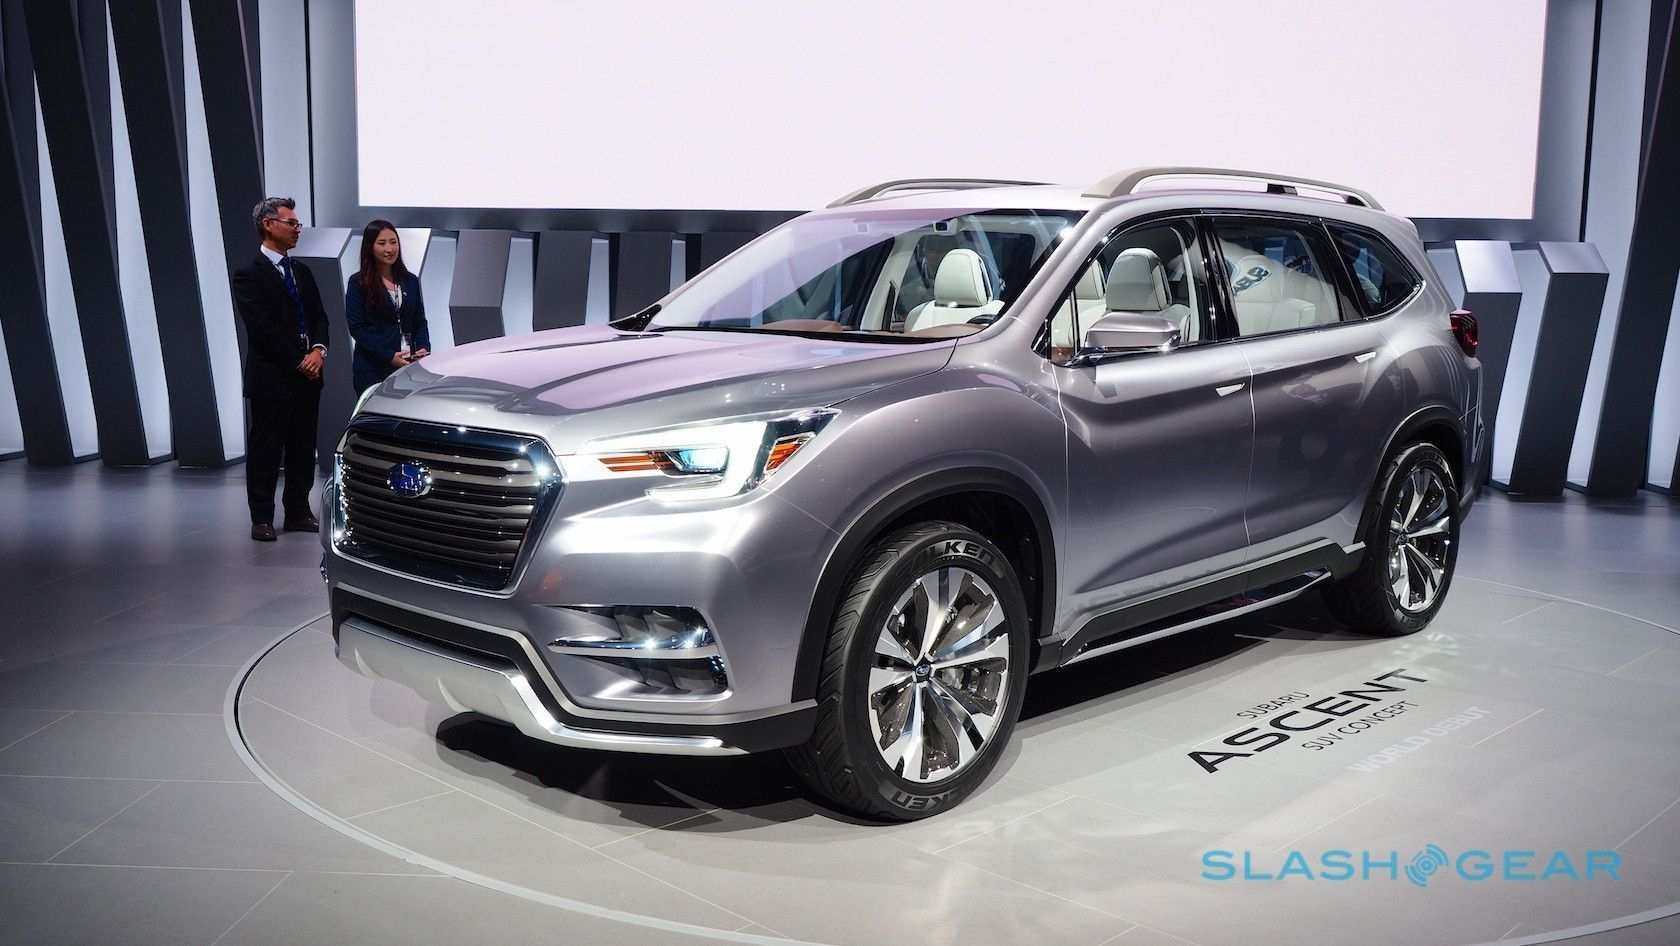 25 New 2019 Subaru Dimensions Configurations by 2019 Subaru Dimensions